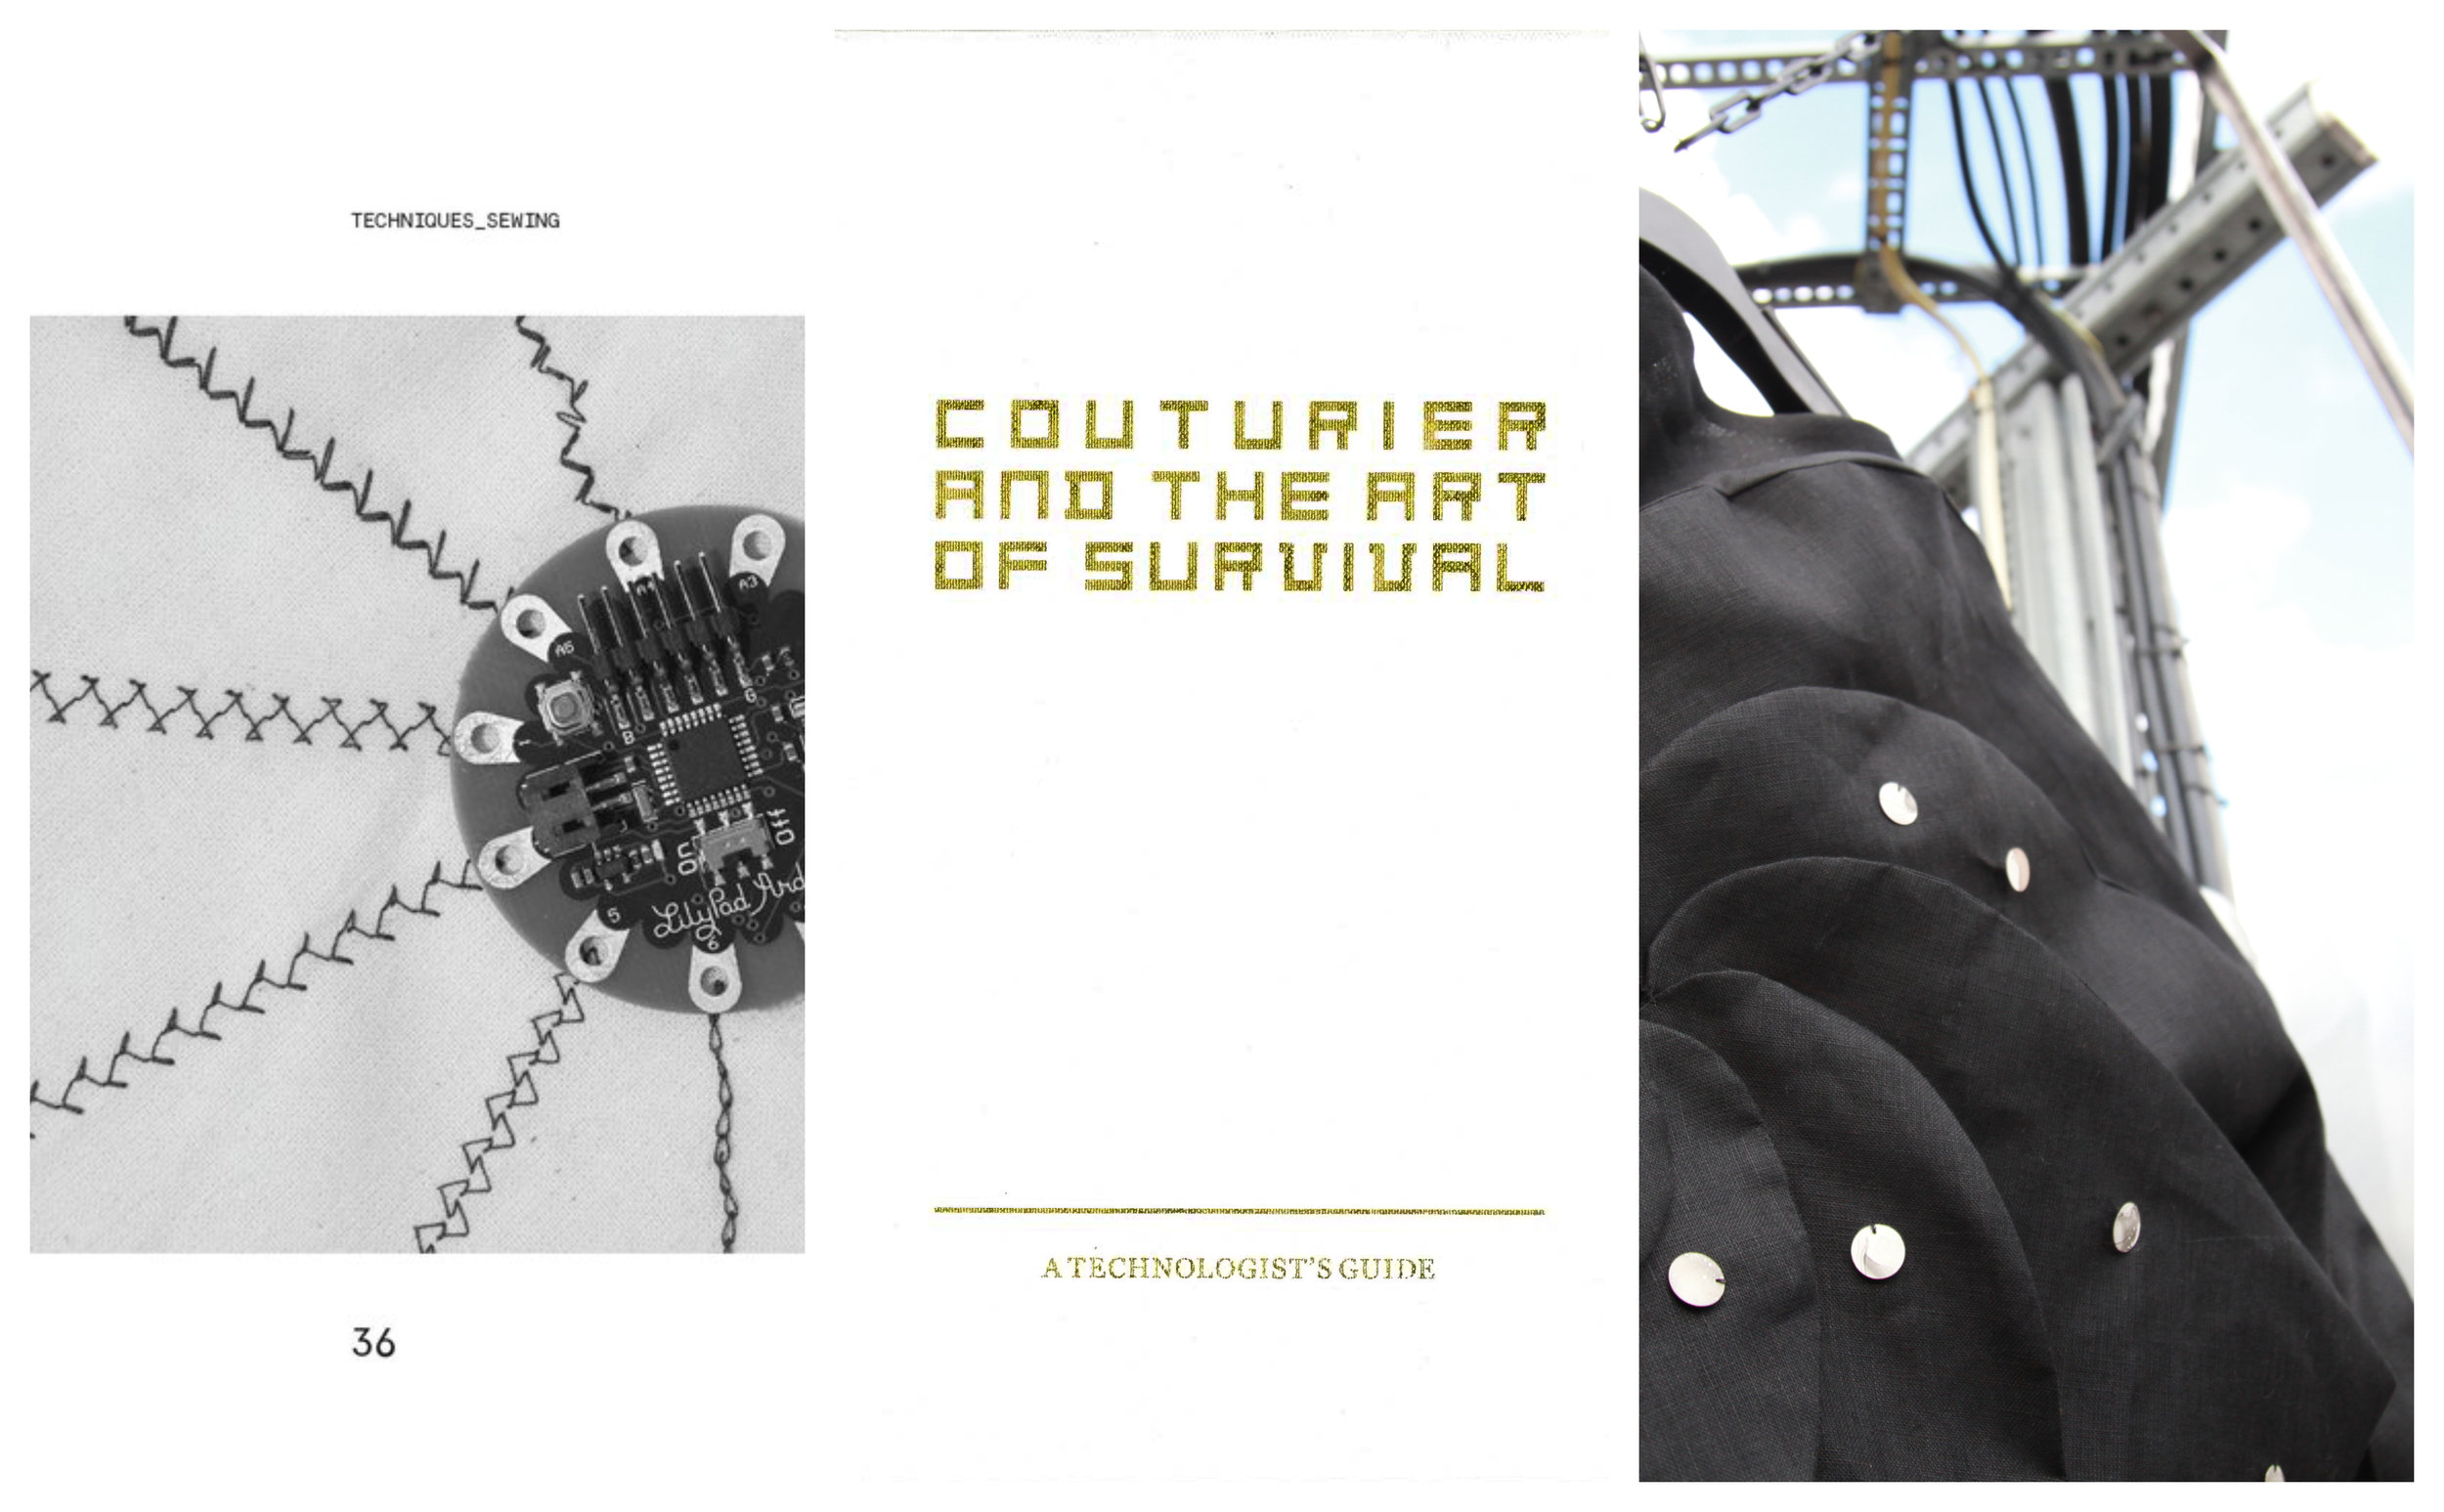 Couturier and the Art of Survival: A Technologist's Guide, 2016 - Couturier and the Art of Survival is speculative design project; an artefact, a guidebook which looks into the hypothetical future of the aesthetic embellishments of couture and the couturier in their struggle to remain relevant in an ever-changing and digital future. Couturier and the Art of Survival seeks to explain how technology can aid in this endeavour and affect the human perception of adornment as a wearable. It is an exploration in updating crafts and disciplines to add dimensionality for wearables of the future. This project was featured in the 2016 Postgraduate Show at Ravensbourne Univeristy London and also on HuffPost.https://ravensbournepost.com/portfolio_page/technologists_guide/